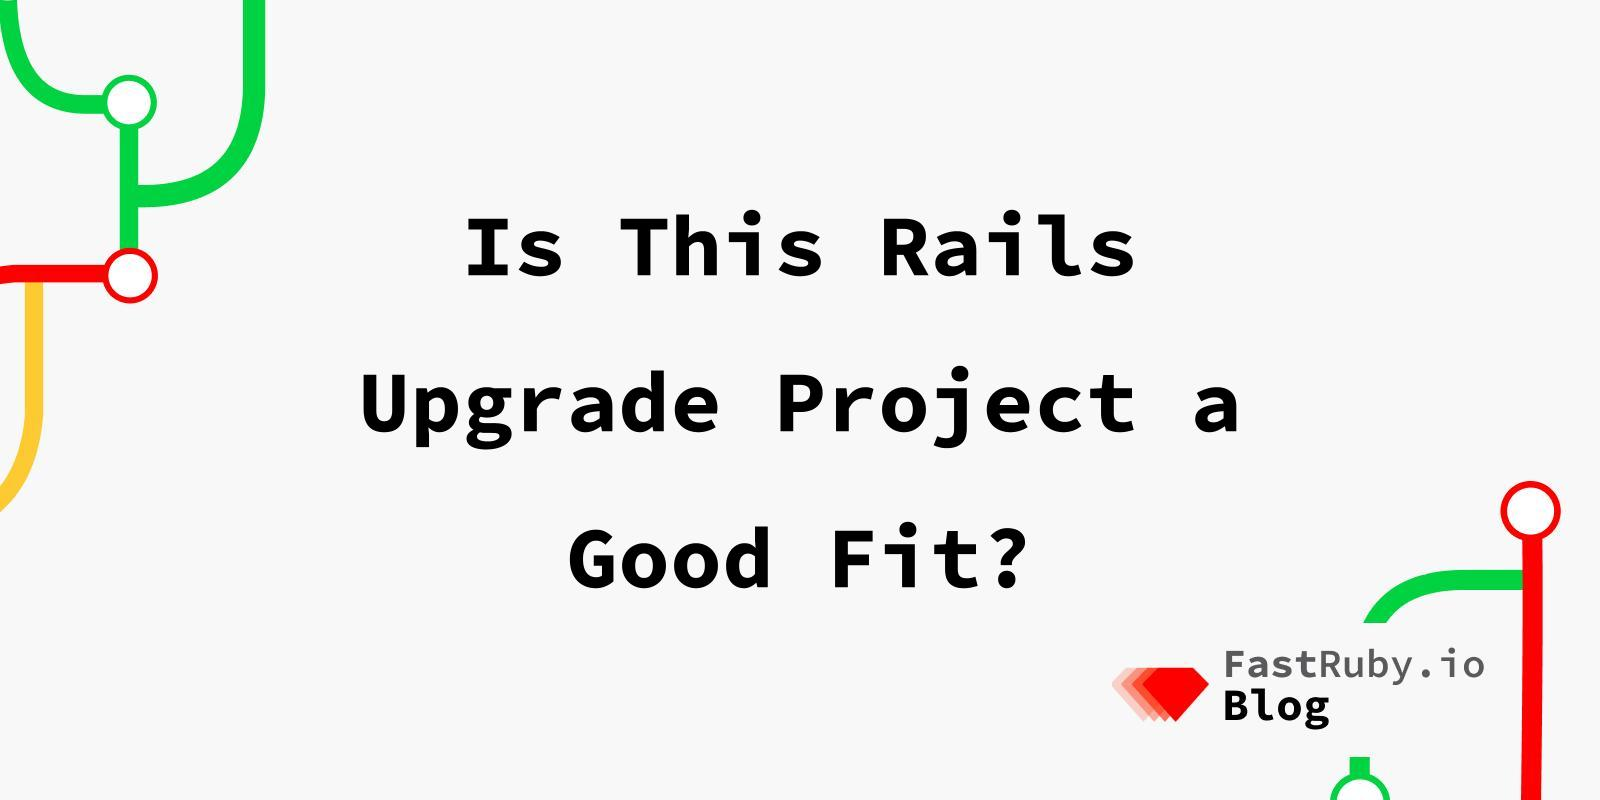 Is This Rails Upgrade Project a Good Fit?